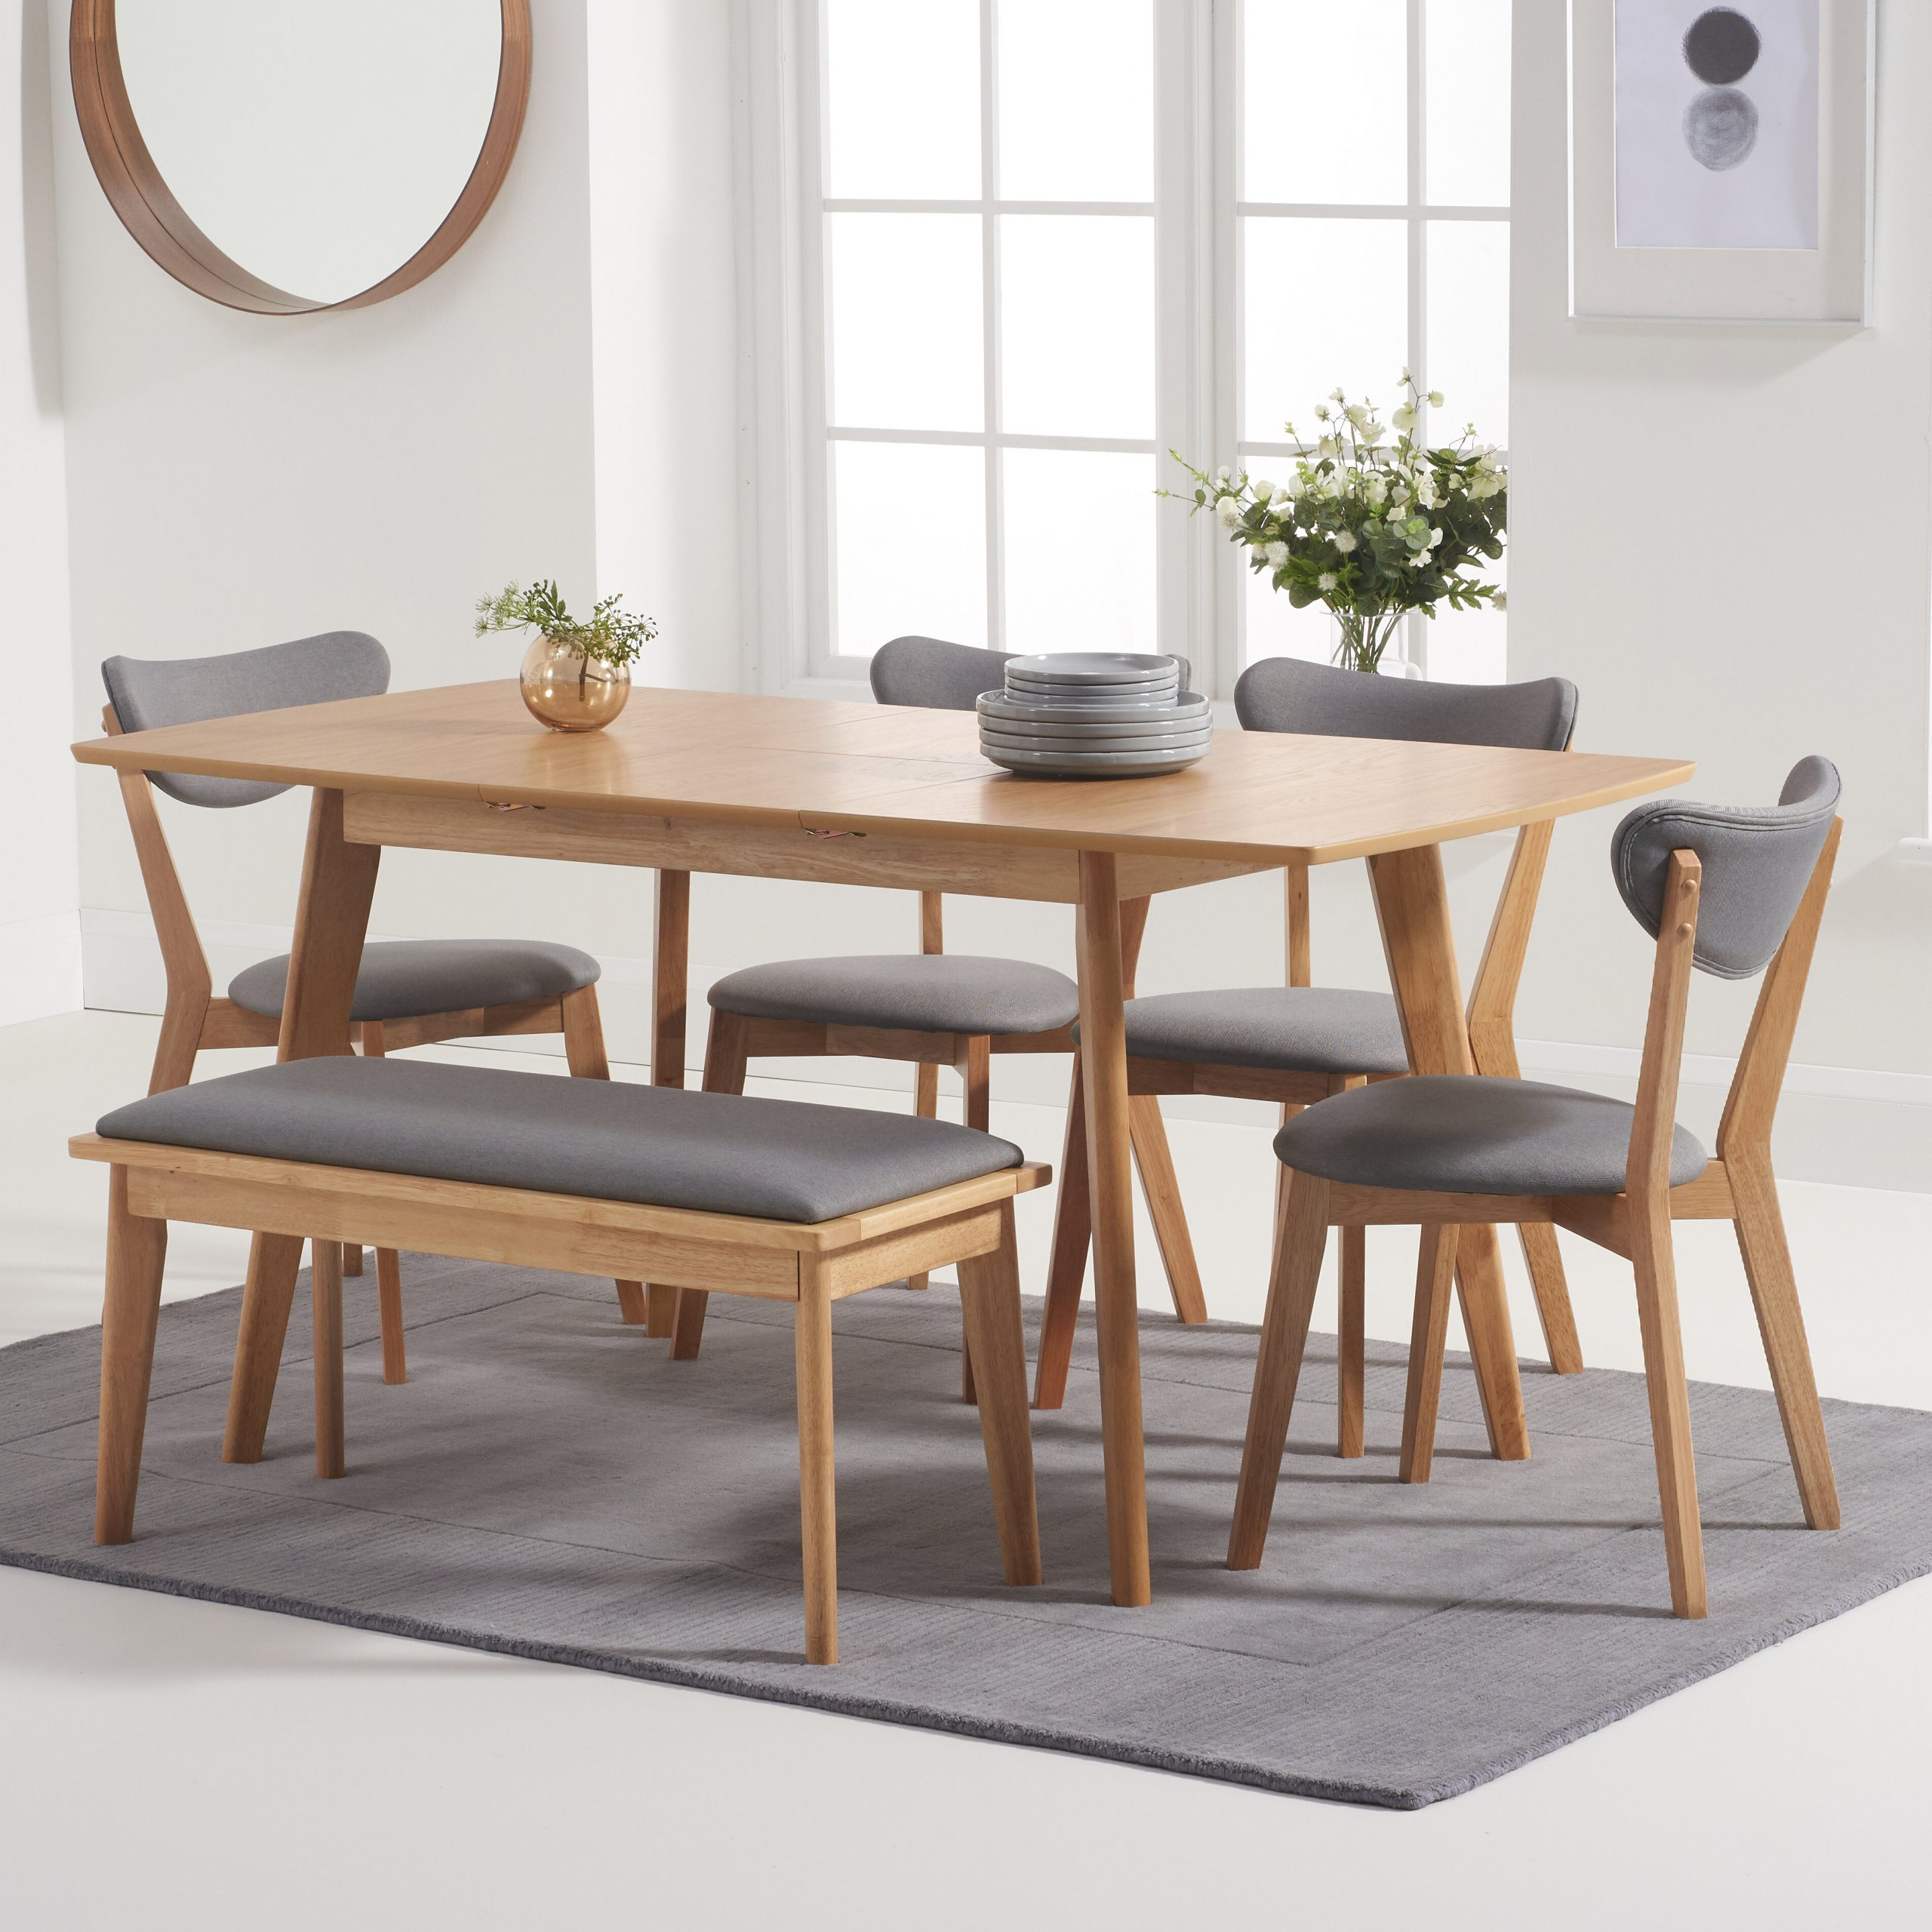 Ideas About Extending Dining Bench, – Howellmagic Dining Within Widely Used Faye Extending Dining Tables (View 6 of 25)